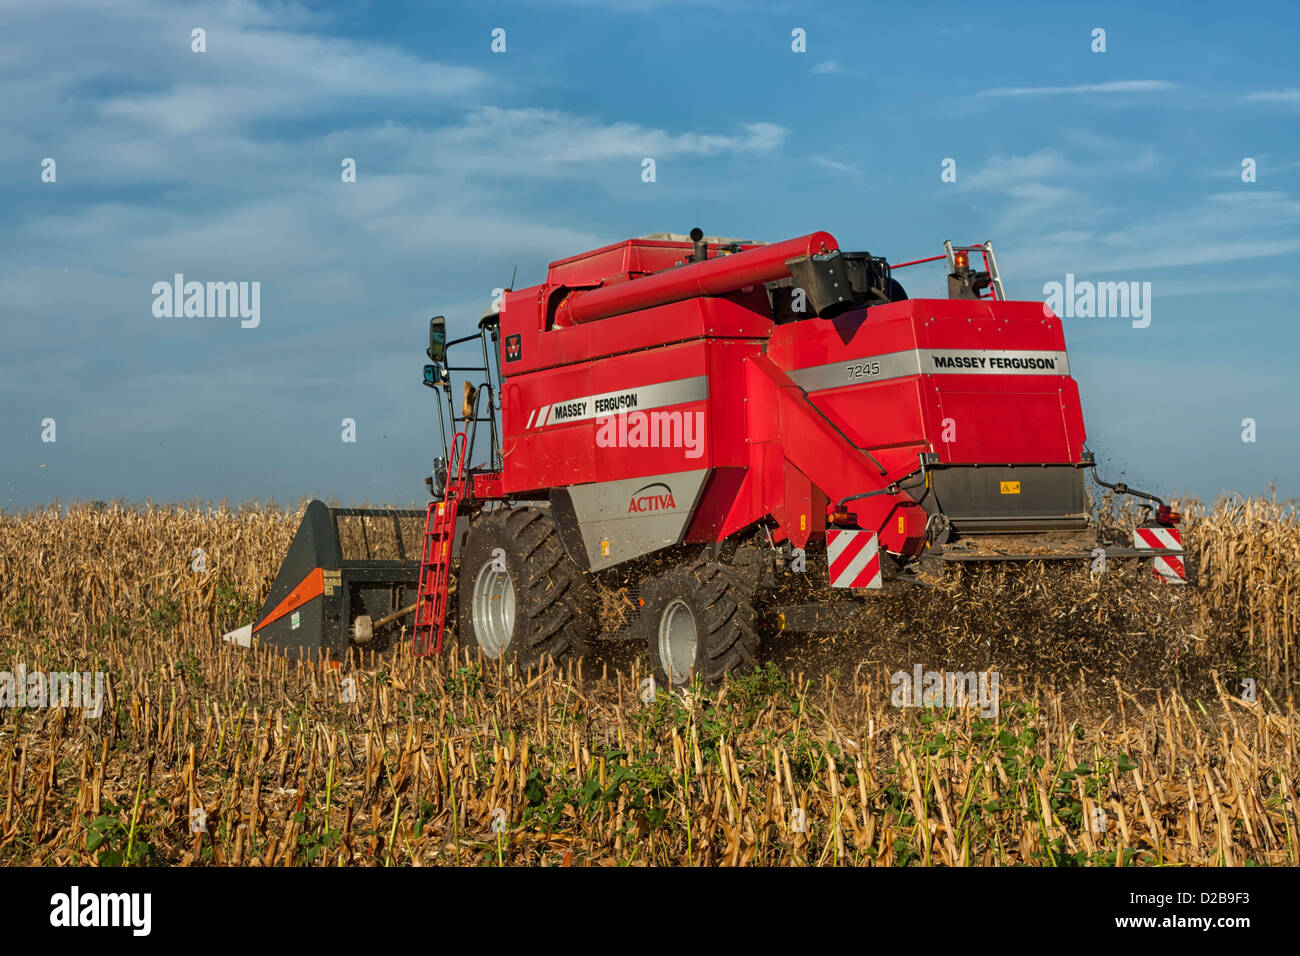 Combined harvester harvesting a crop of maize in a rural environment - Stock Image